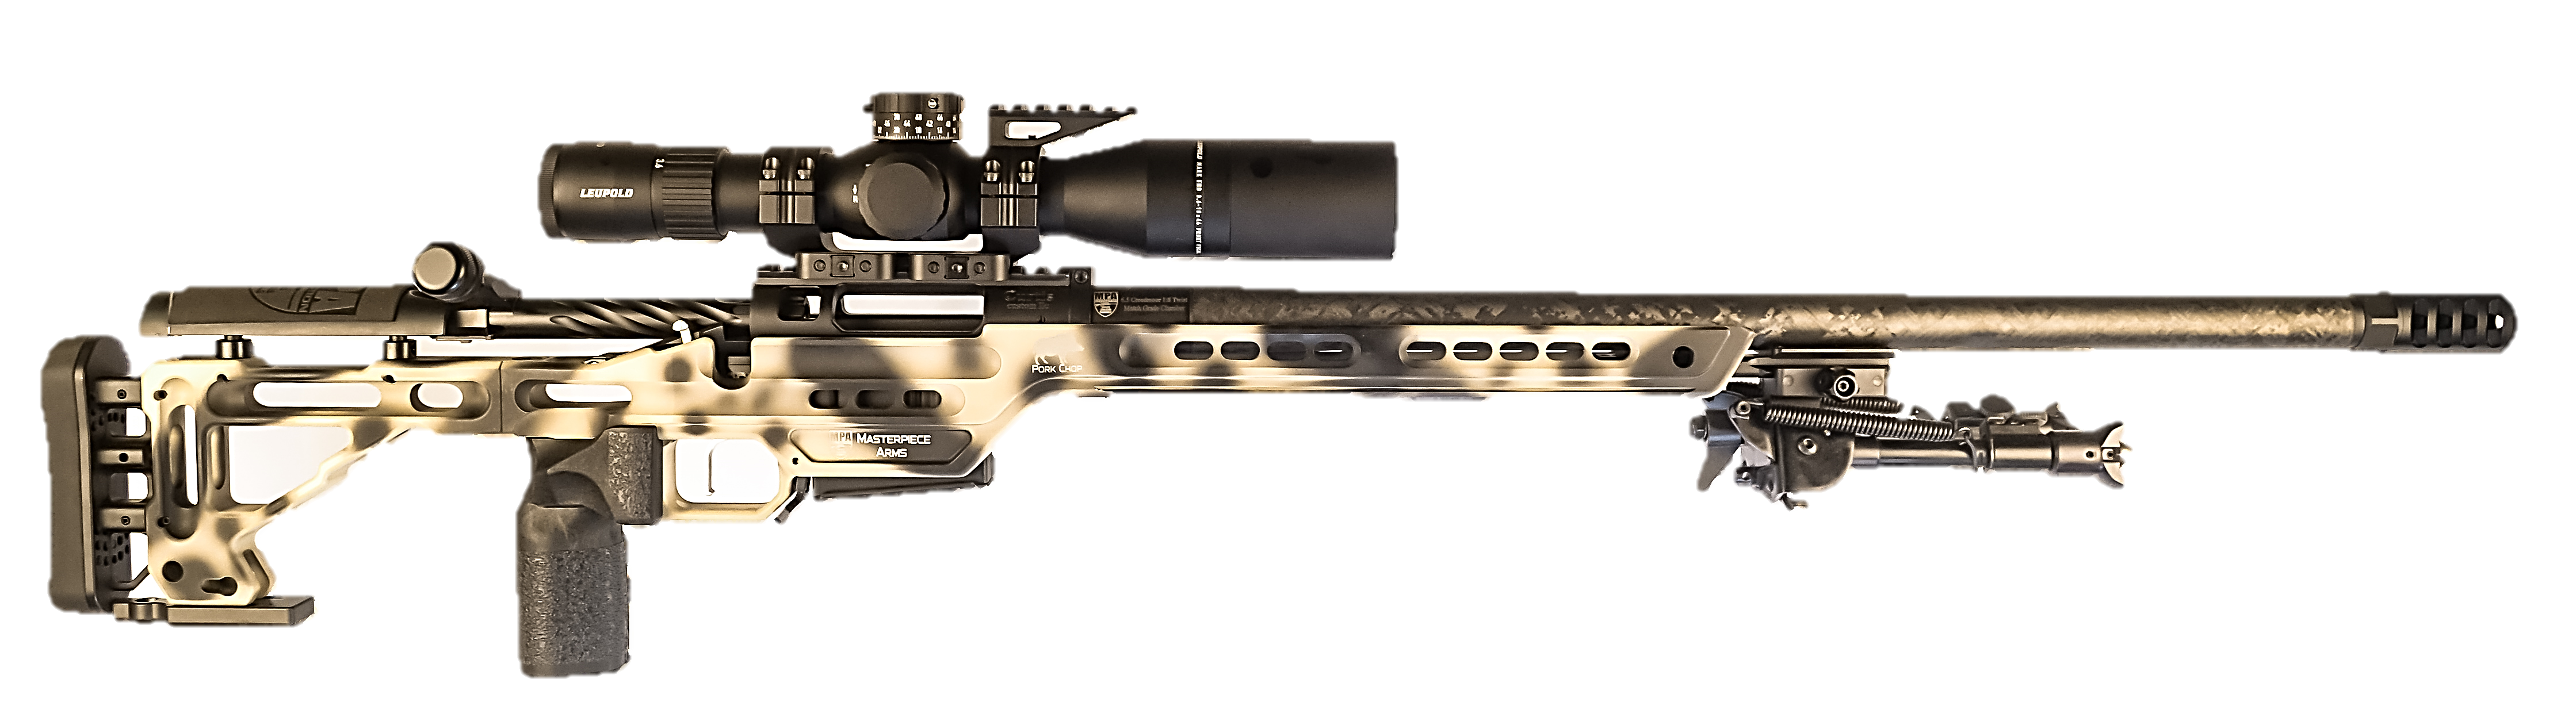 Eliminate Varmints and Manage the Herd with the New MasterPiece Arms (MPA) Pork Chop Rifle